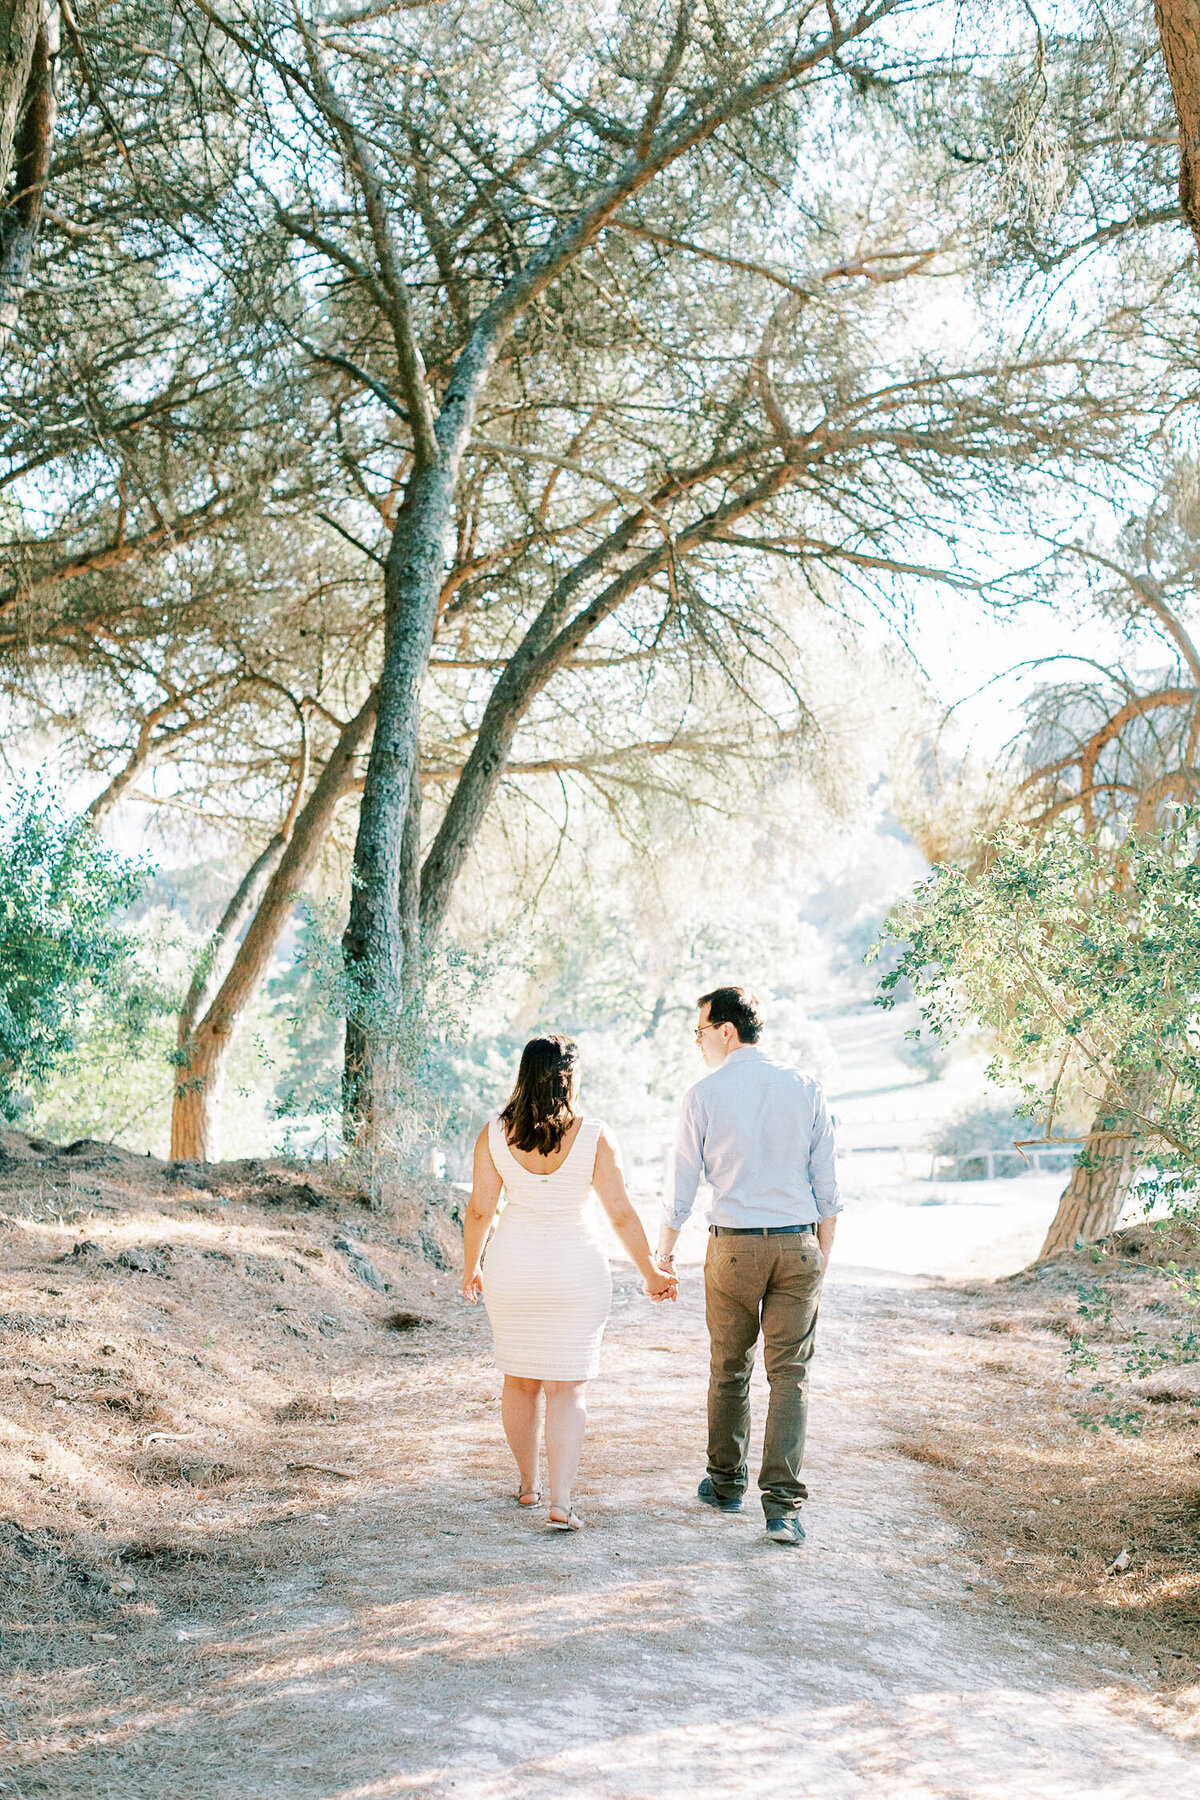 magical-engagement-in-monsanto-park-7